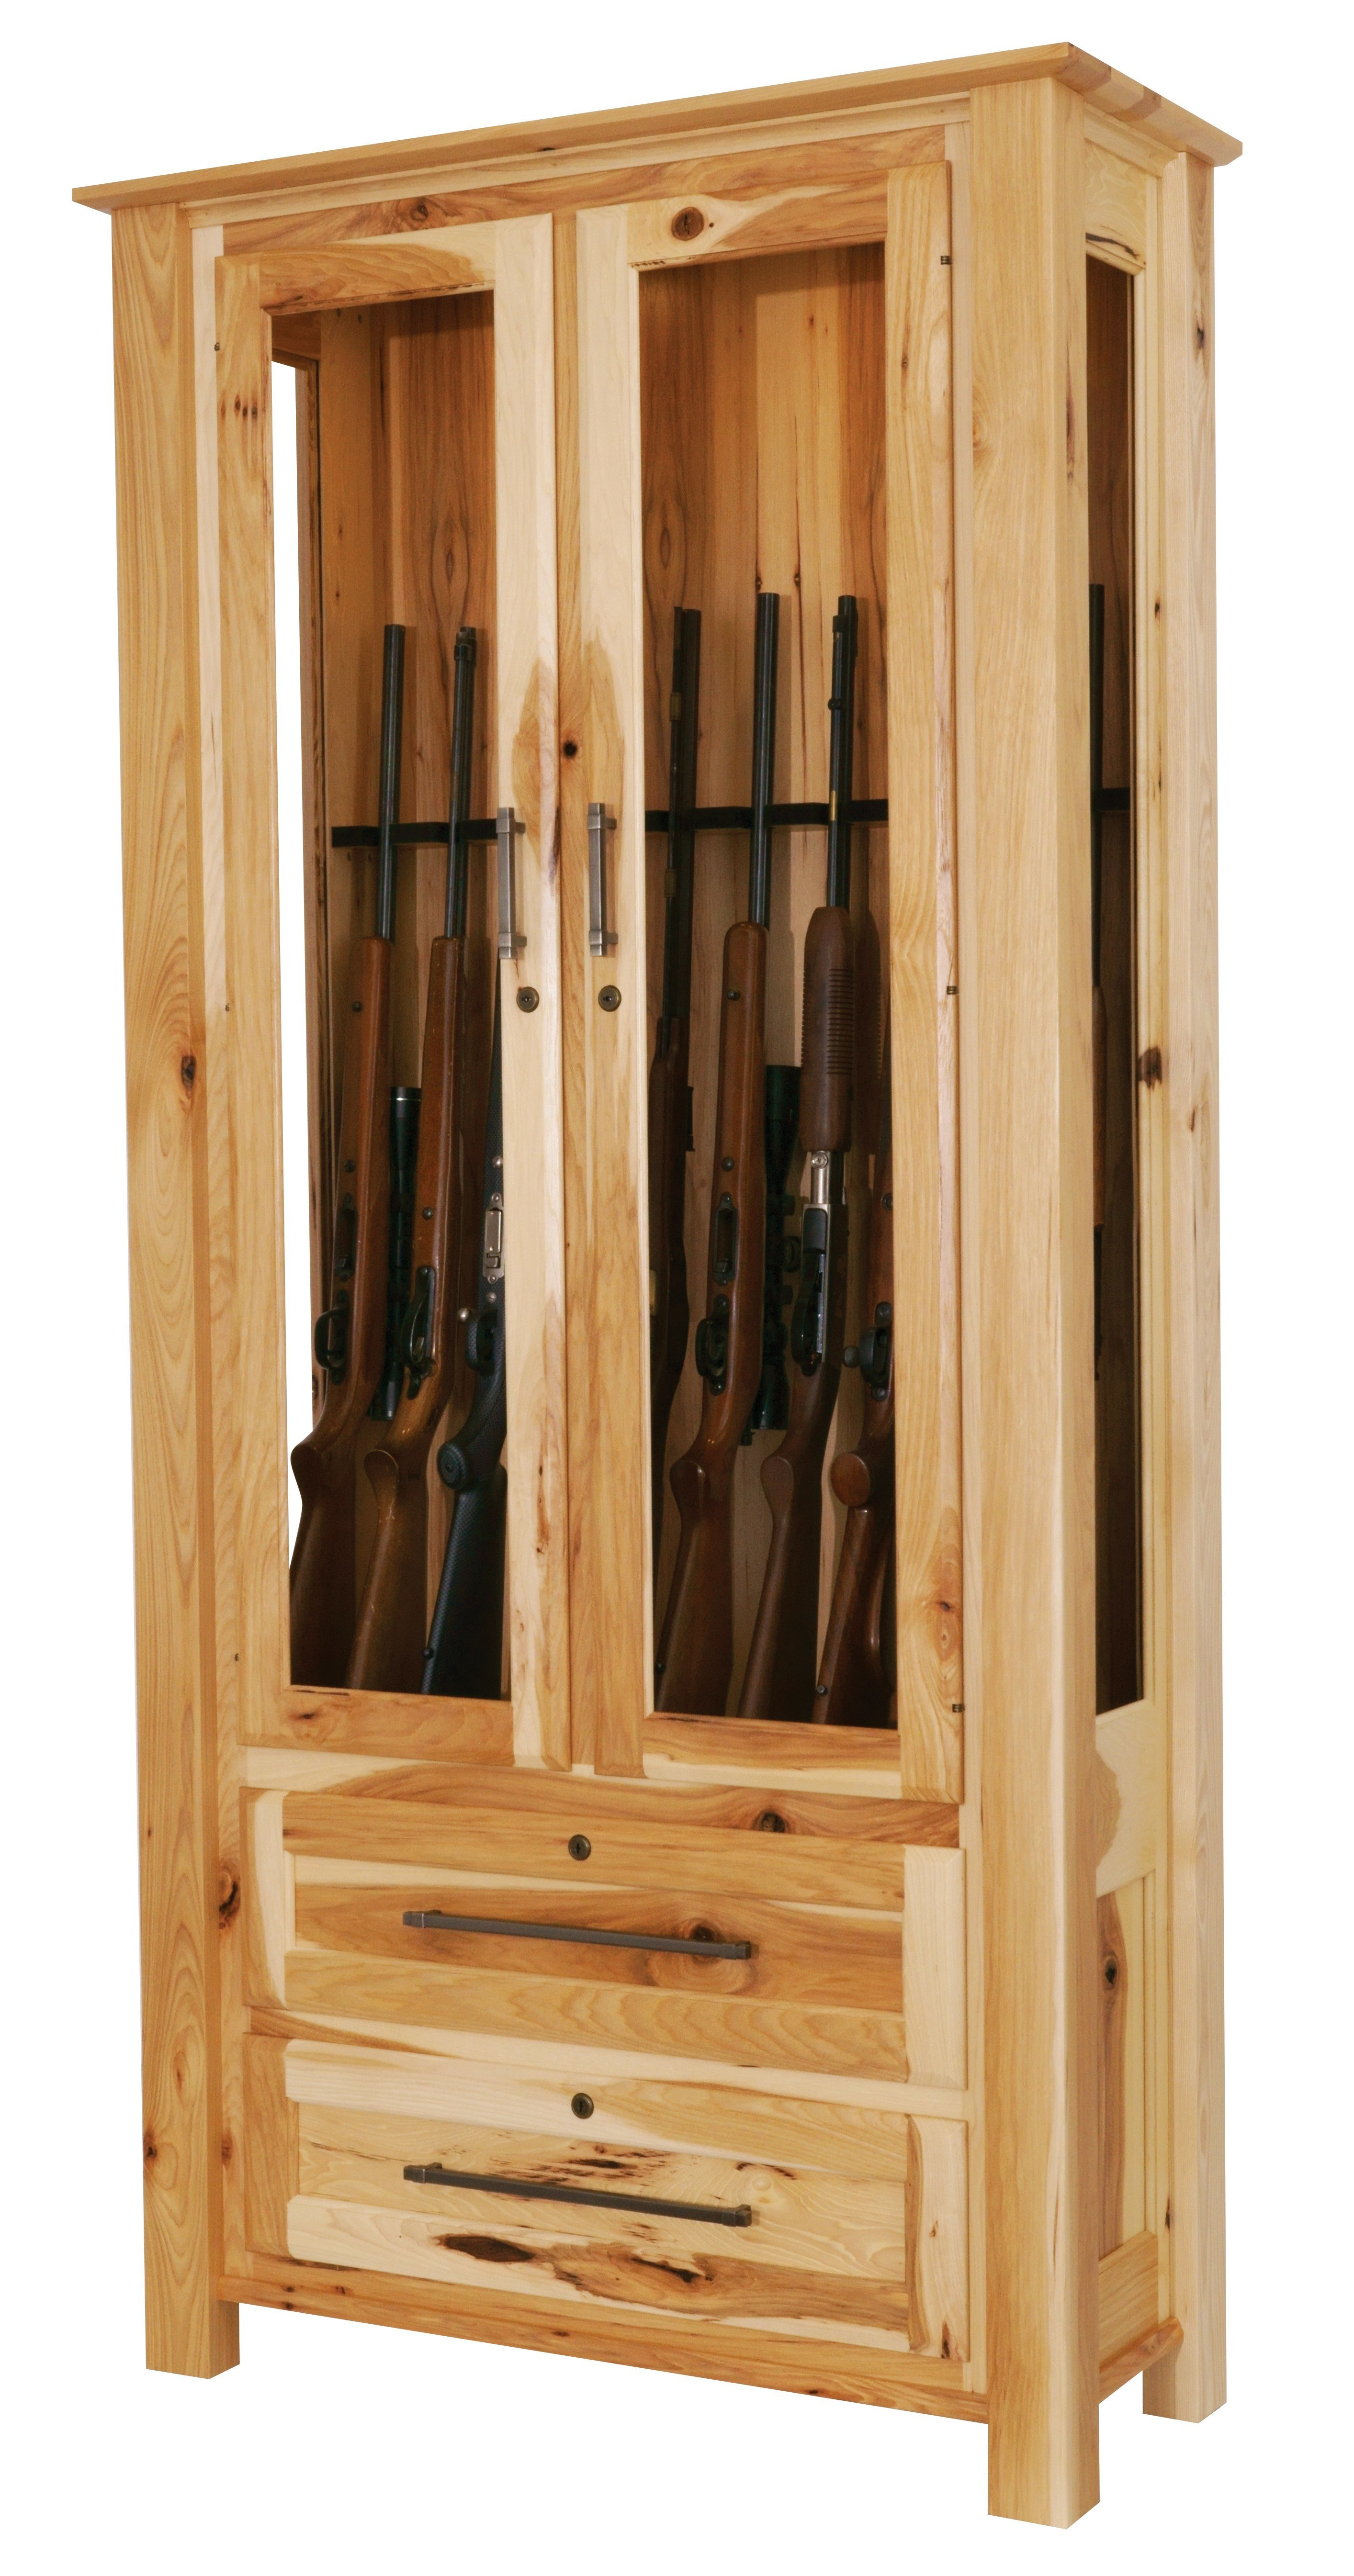 Wooden Gun Cabinet From Dutchcrafters Amish